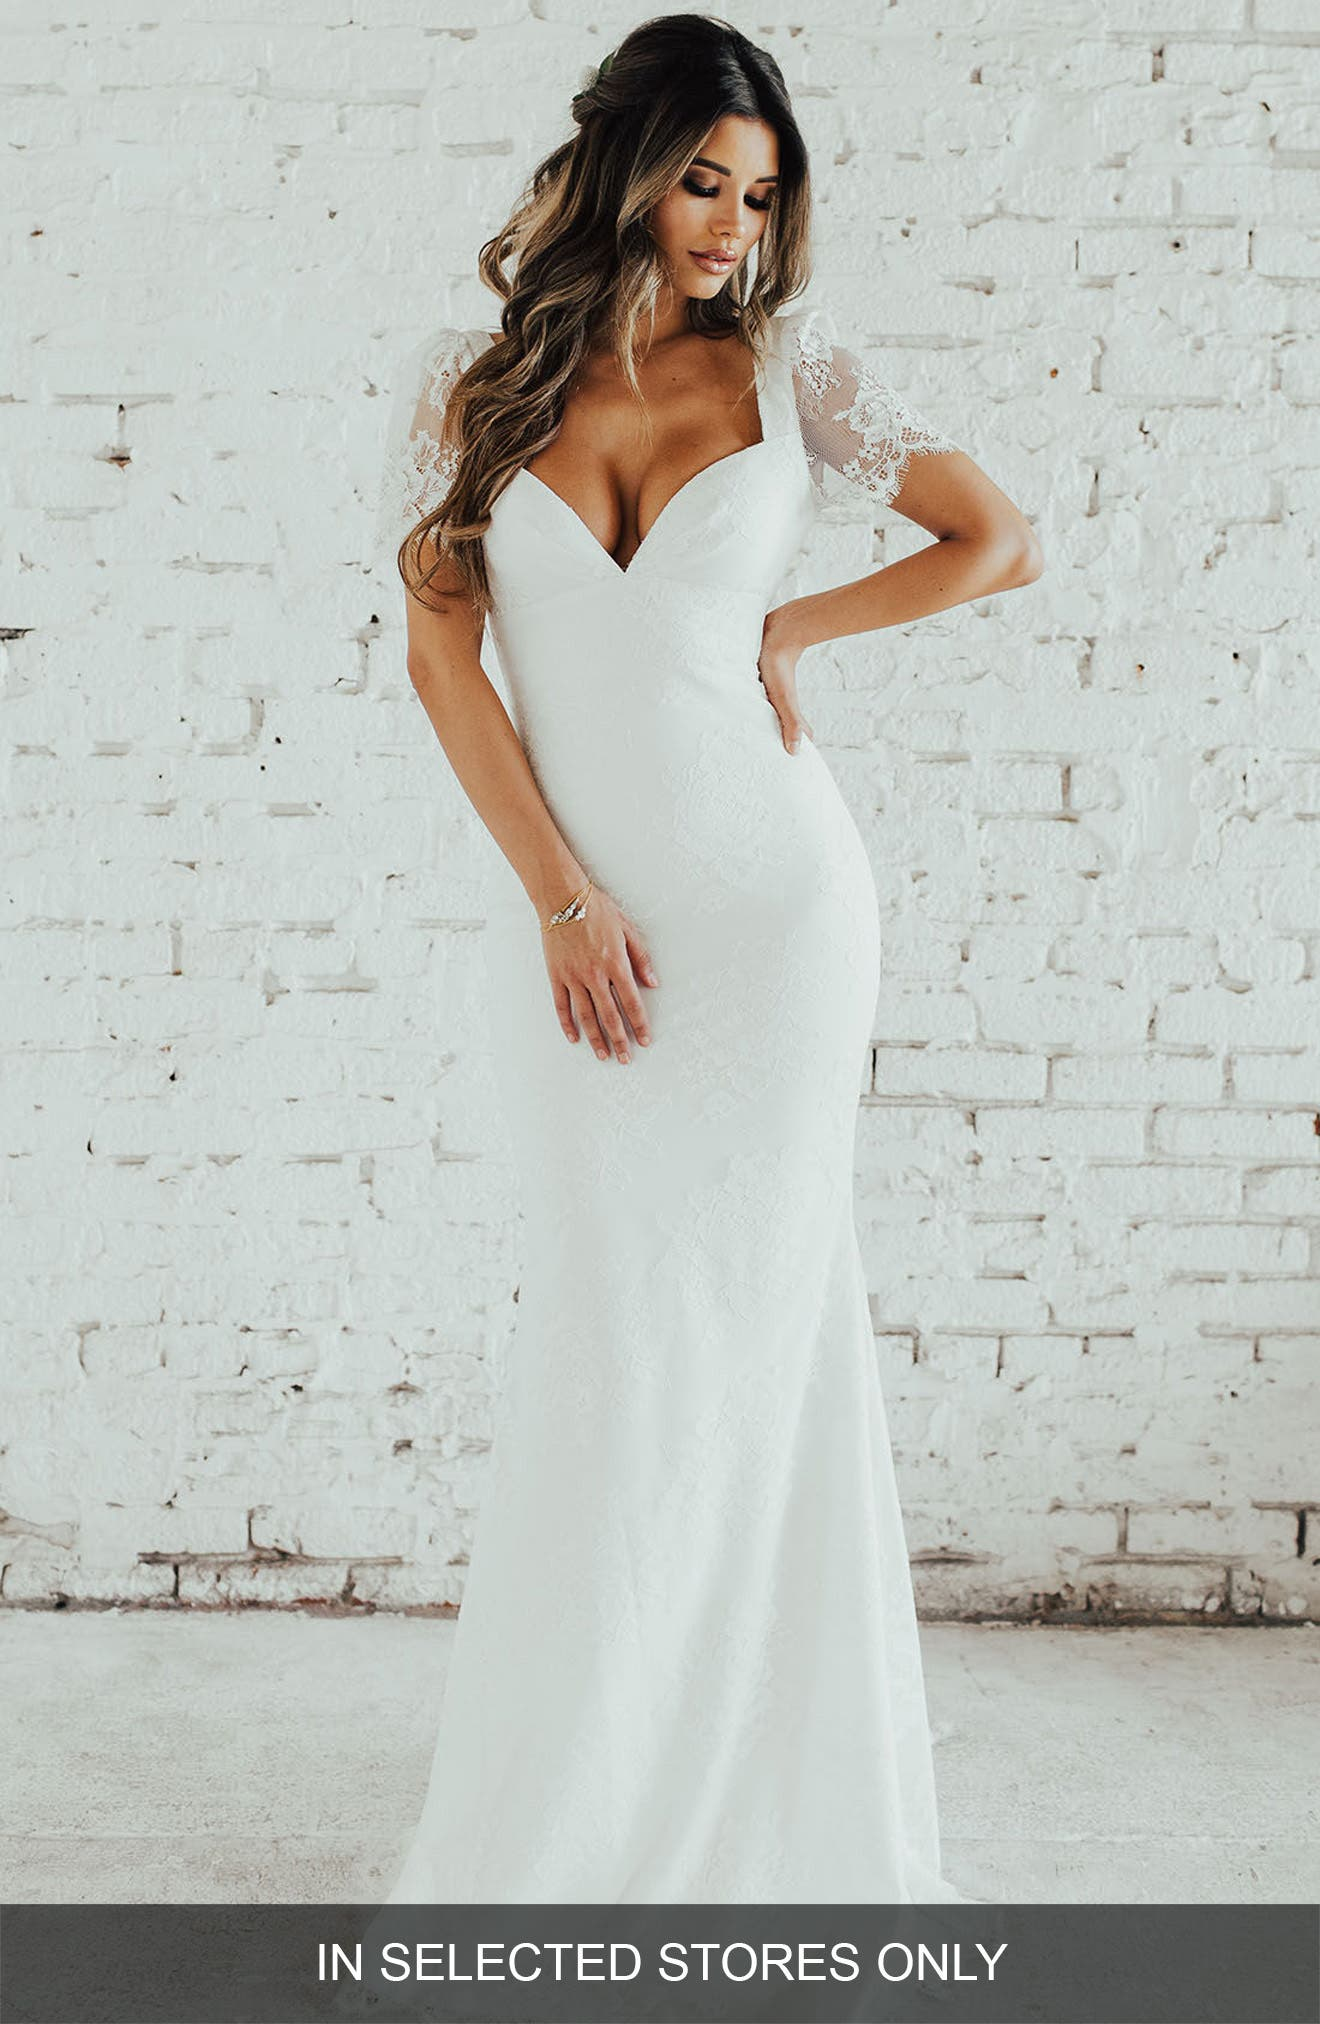 Malaga Lace Trumpet Gown,                             Main thumbnail 1, color,                             Ivory/ Ivory